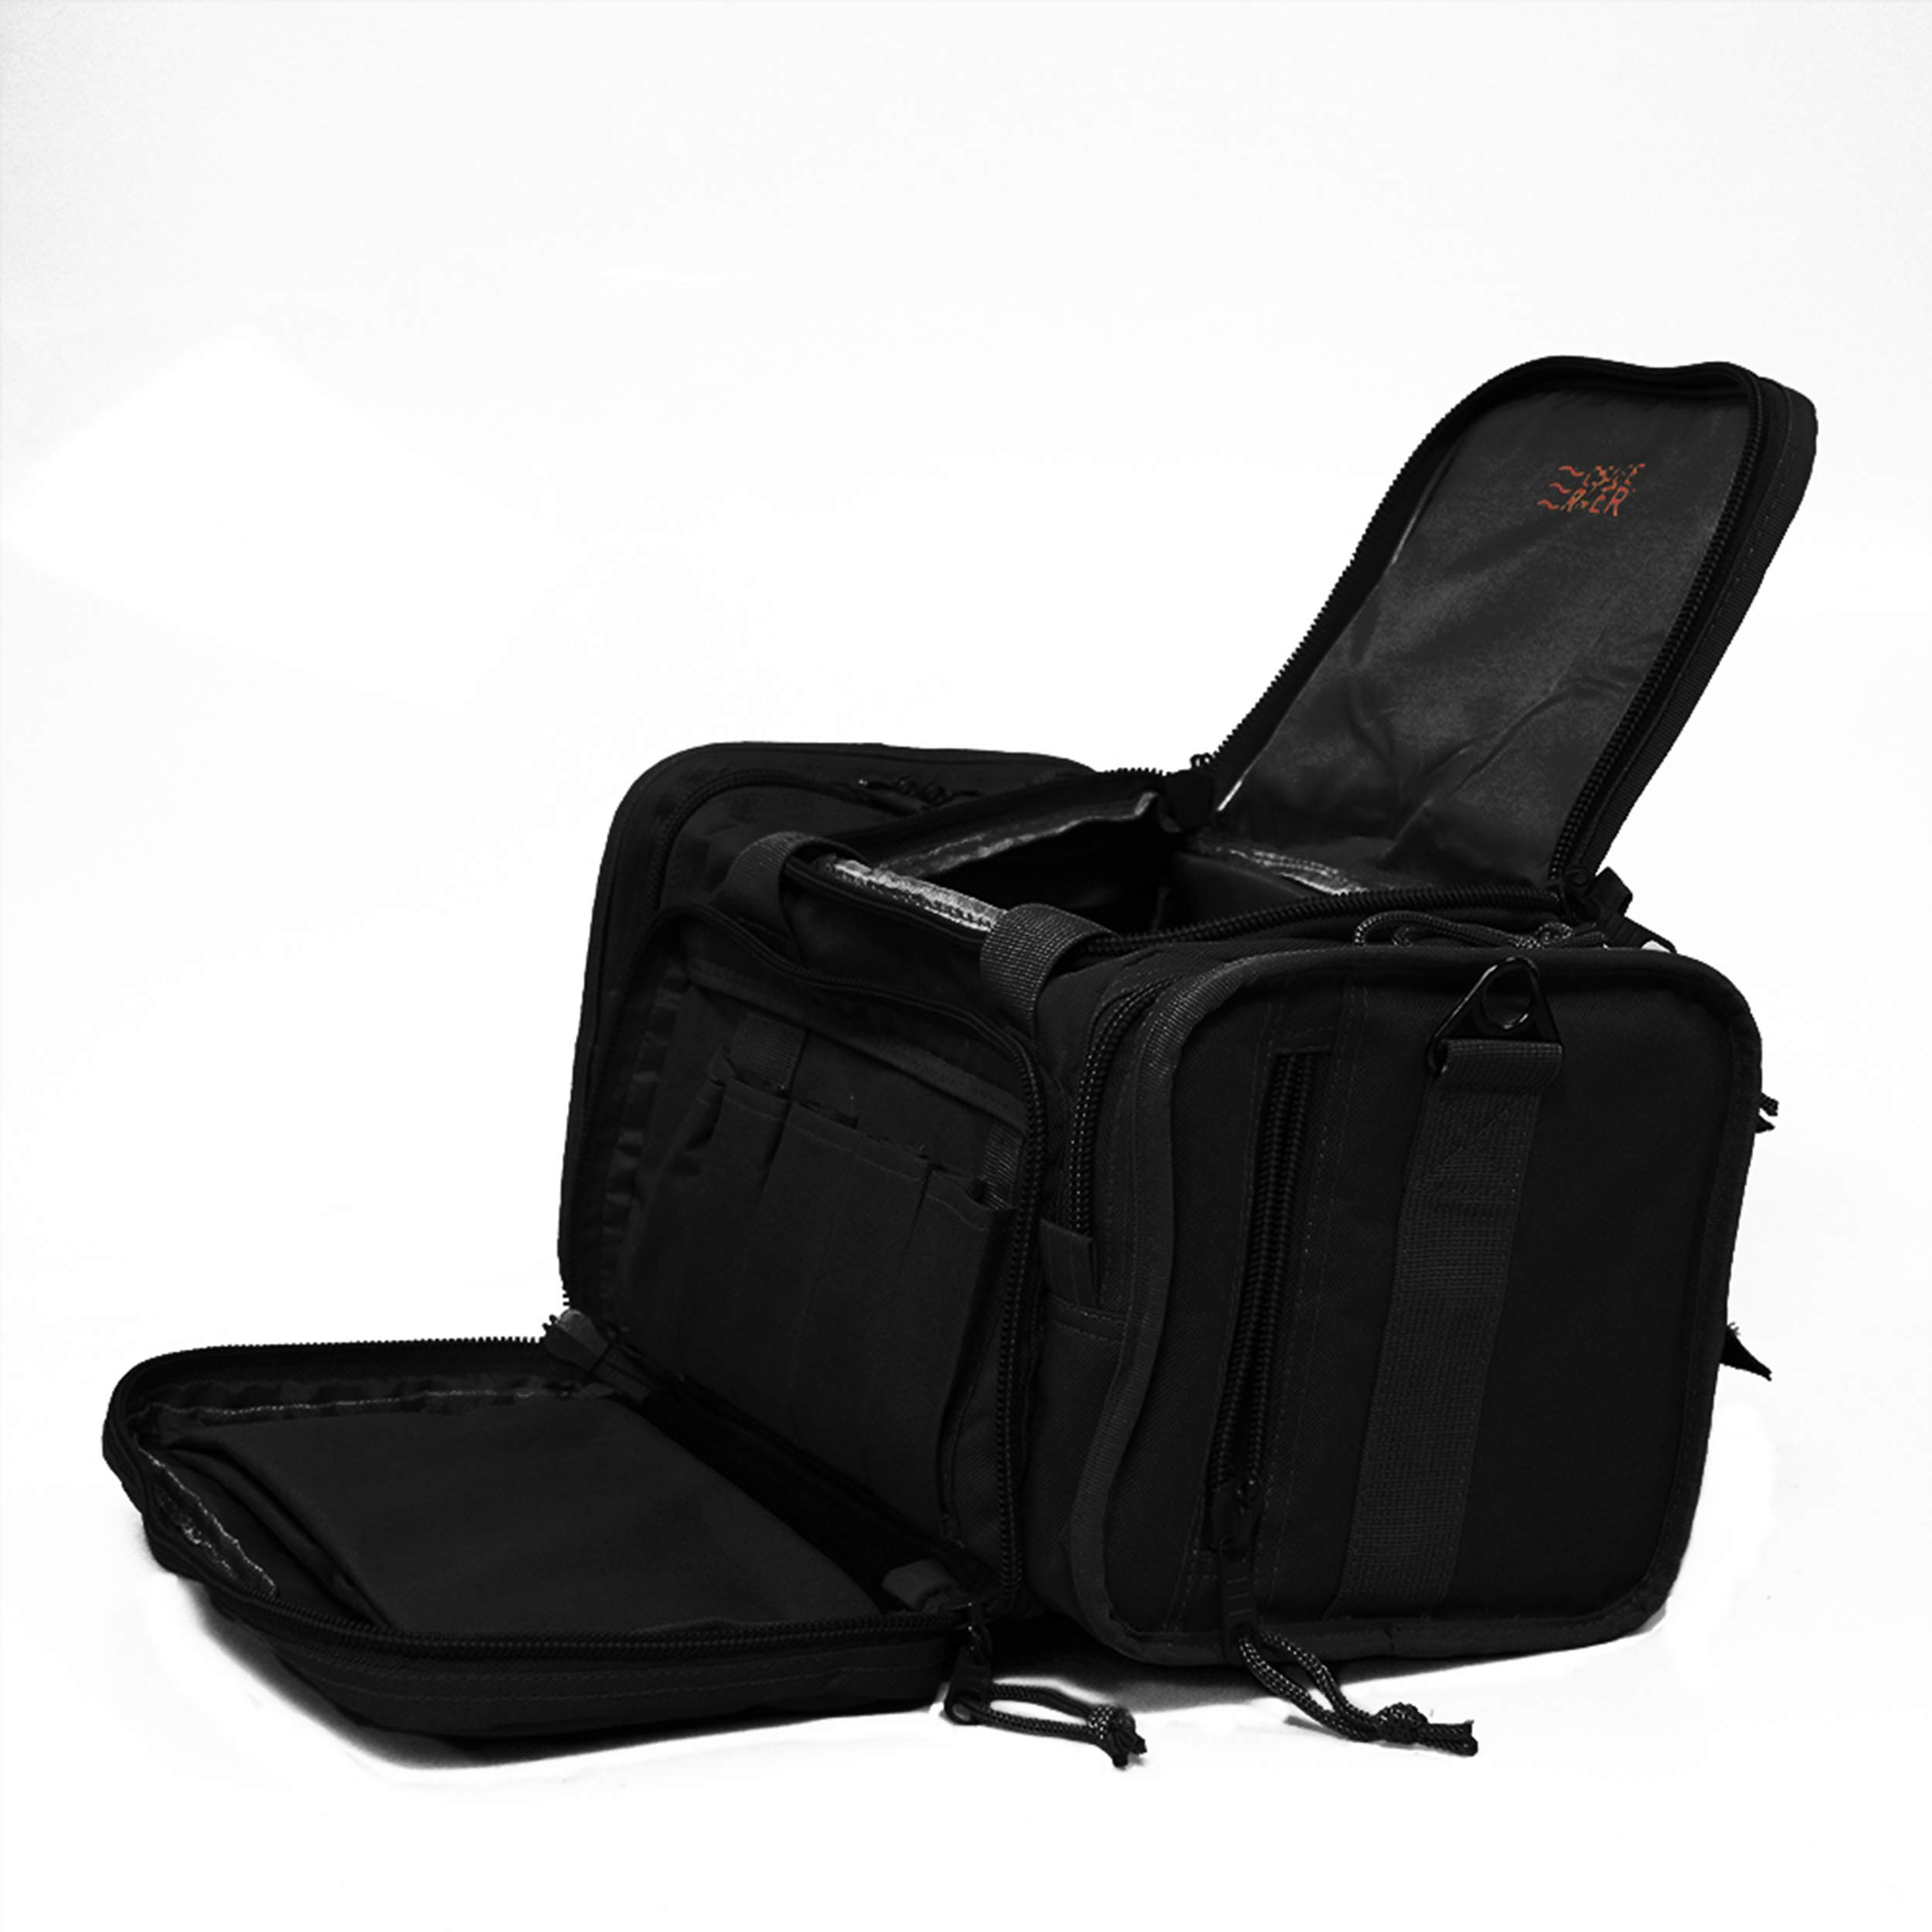 Osage River Tactical Shooting Gun Range Bag, Black , Light Duty (13.5 x 10.5 x 7.5) Inches by Osage River